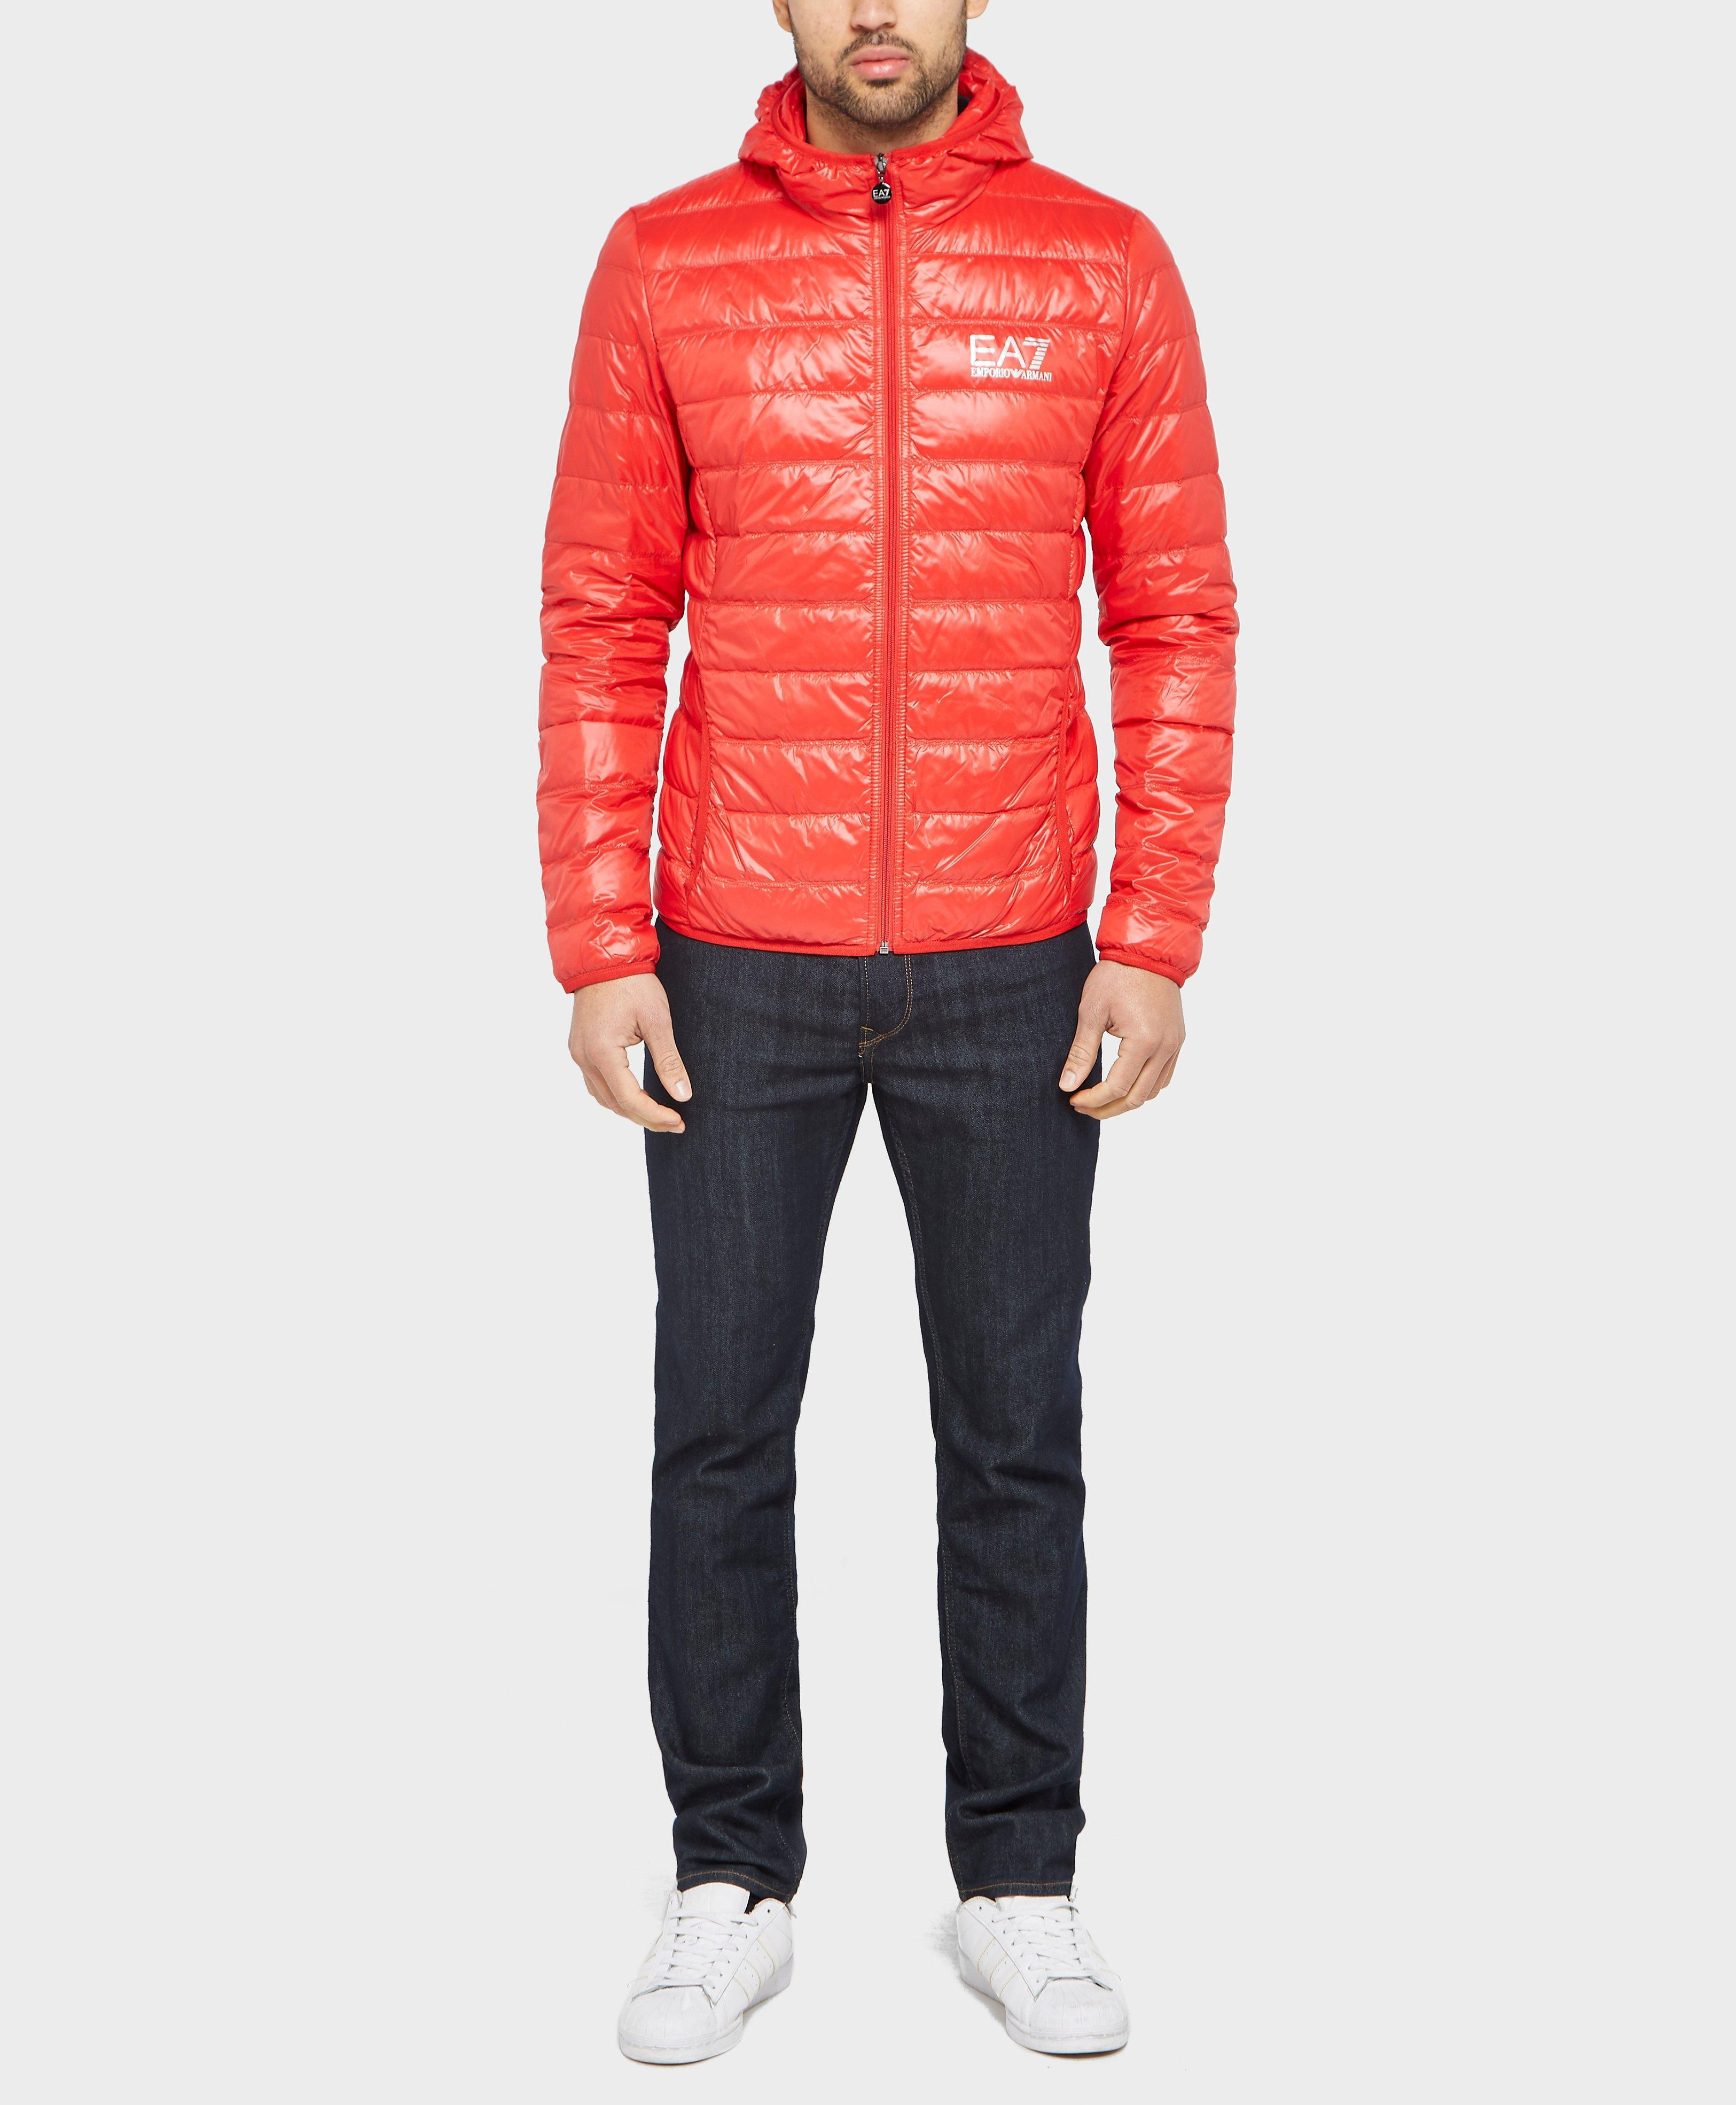 dd99560f541 Lyst - EA7 Down Bubble Jacket for Men